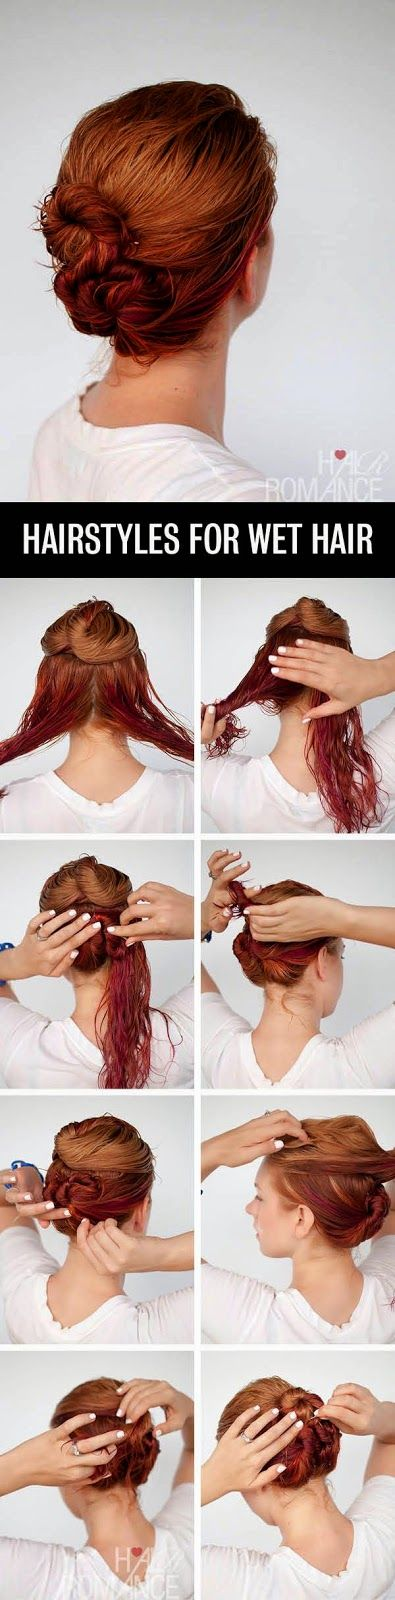 Hair Style For Wet Hair!